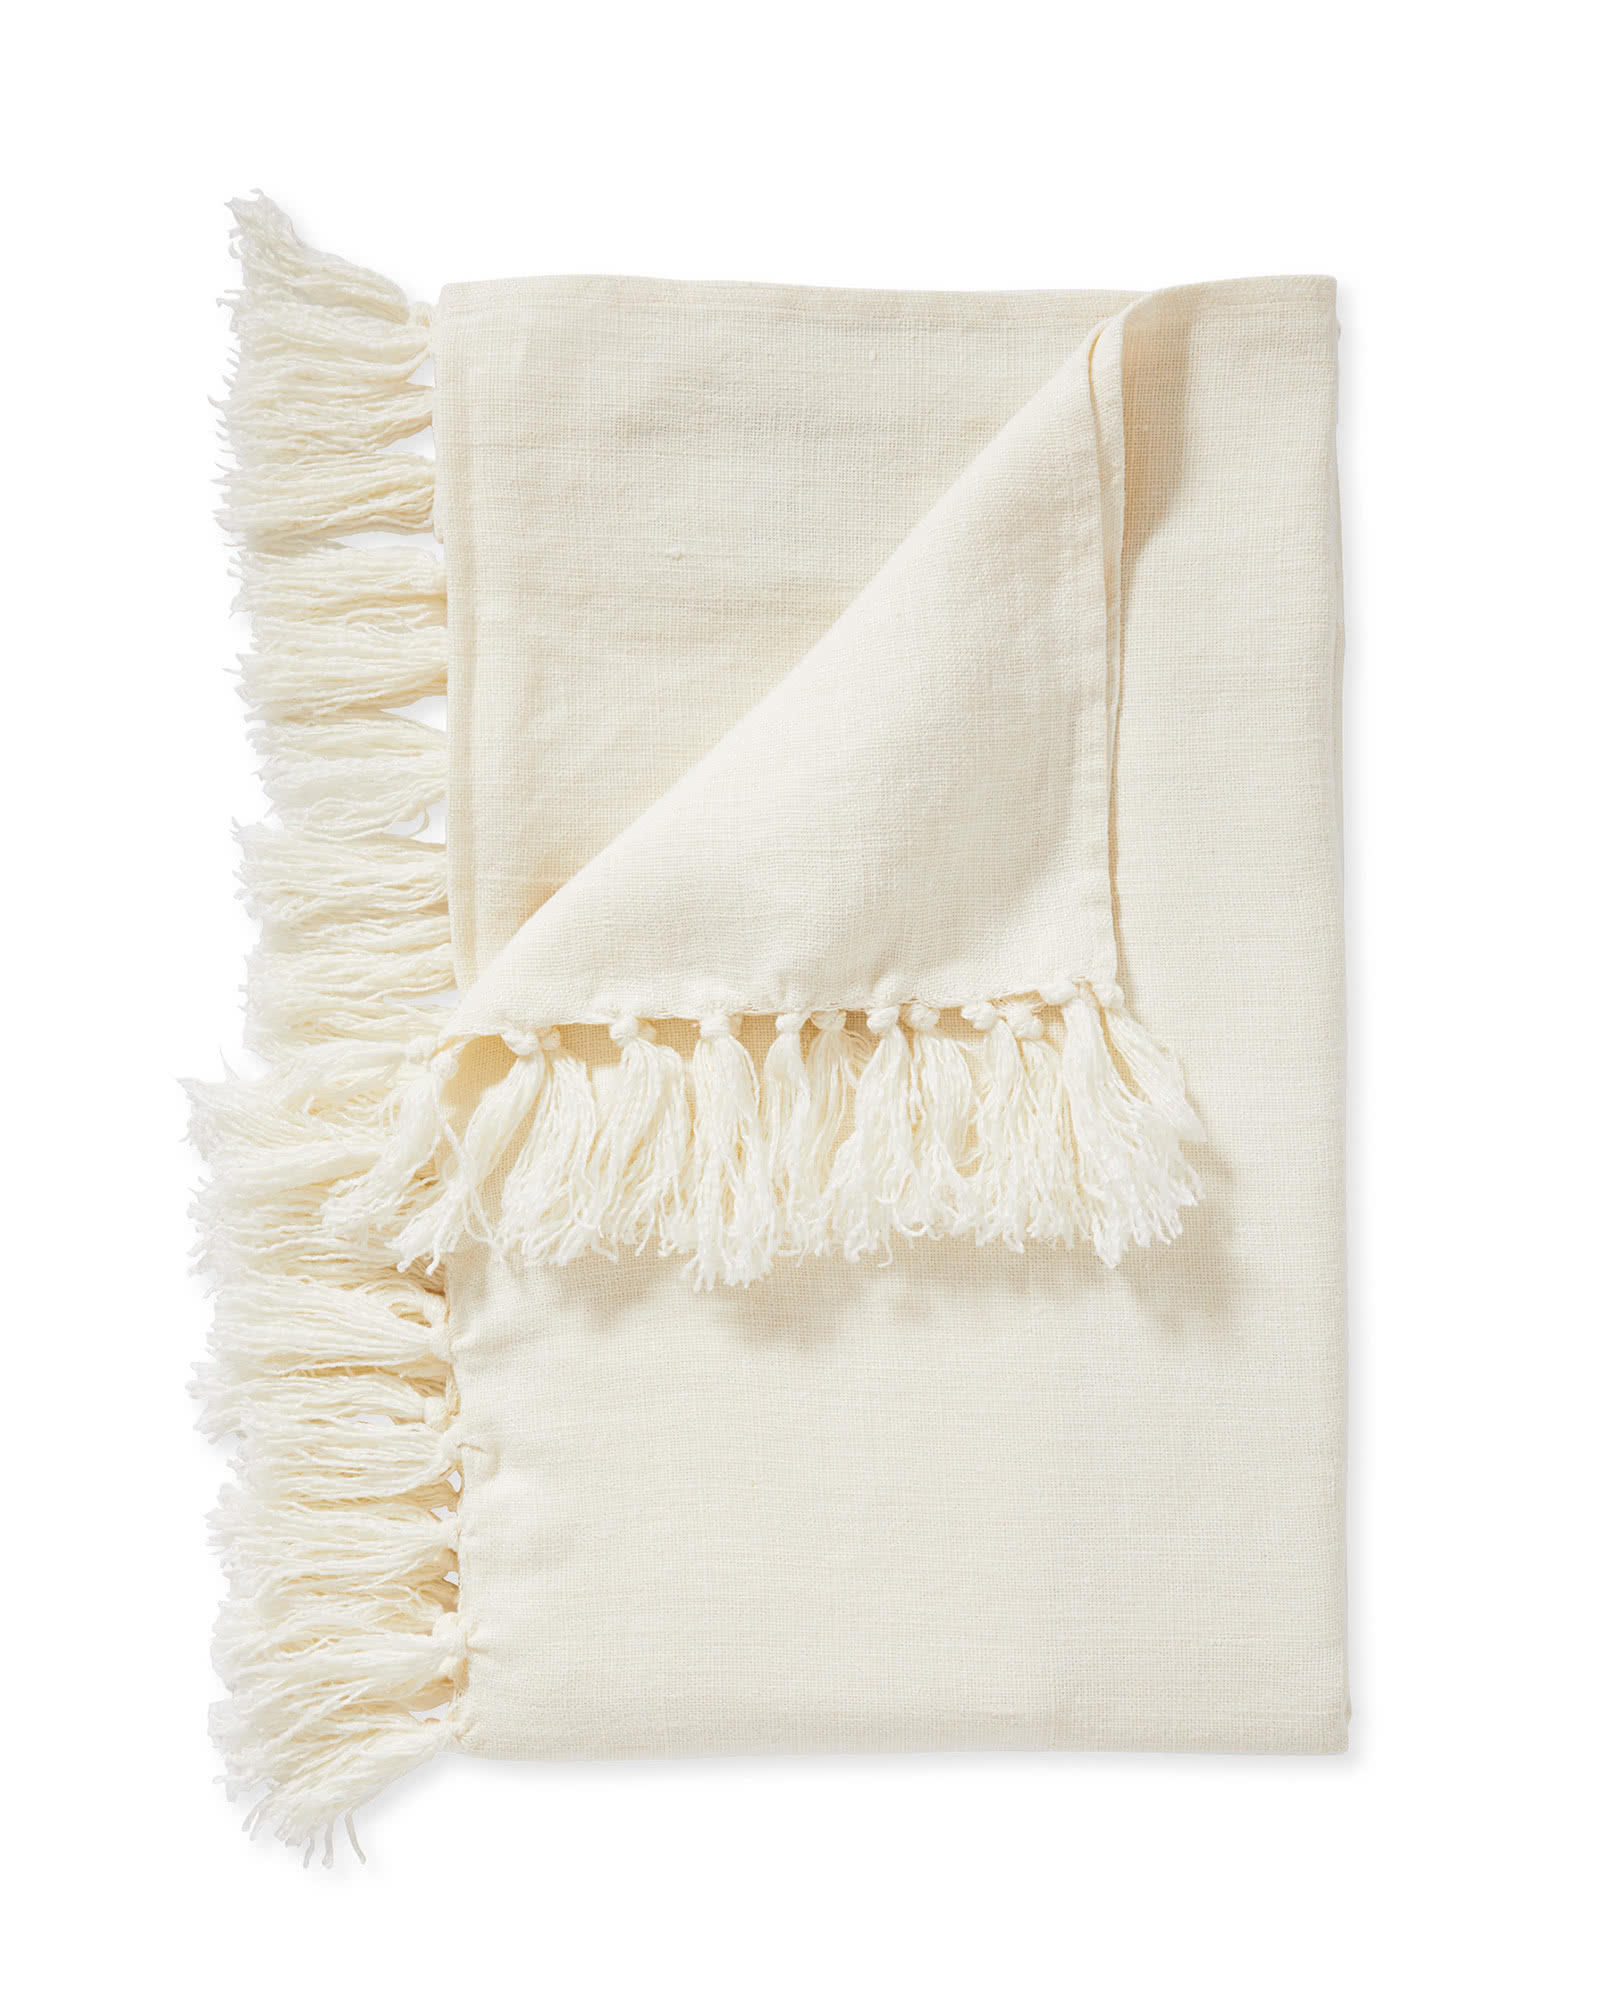 Mendocino Linen Throw, Ivory